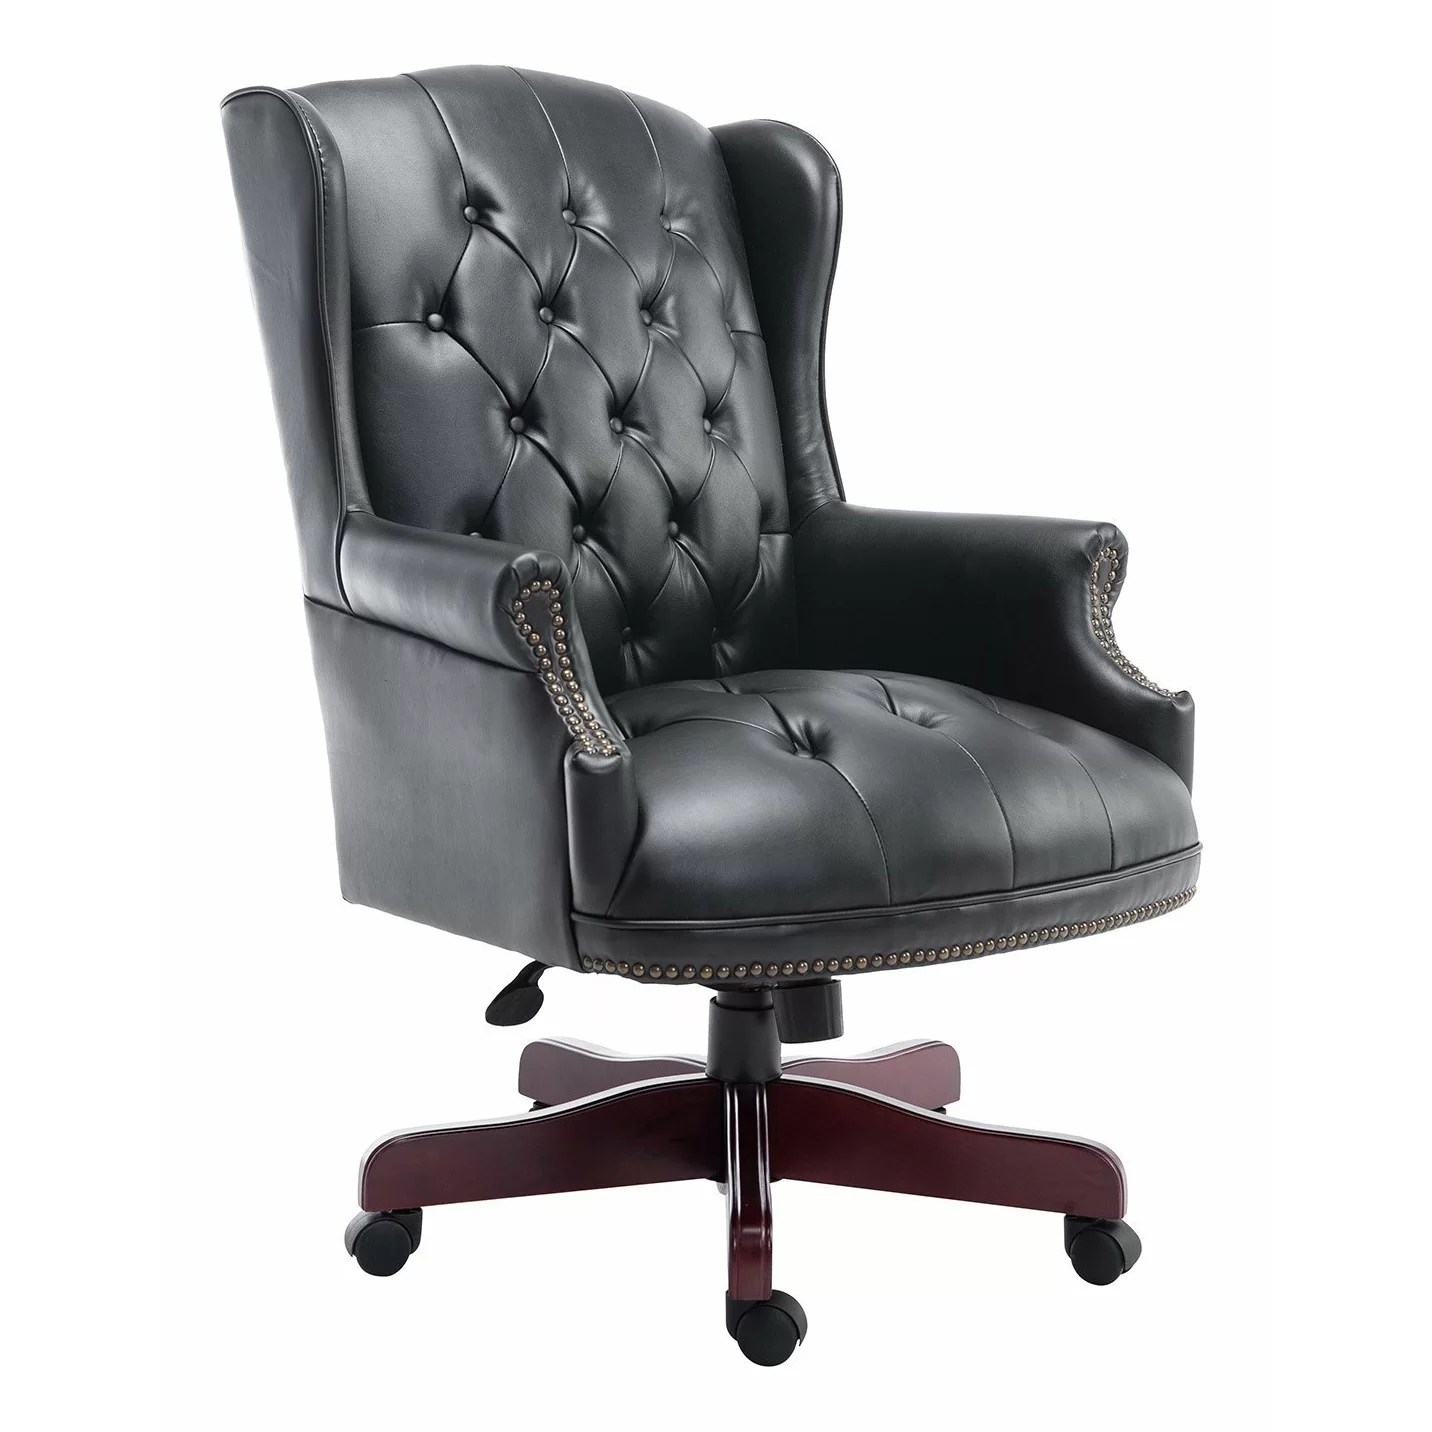 Luxury Office Chair Homcom Luxury Rolling 79 5cm High Back Office Executive